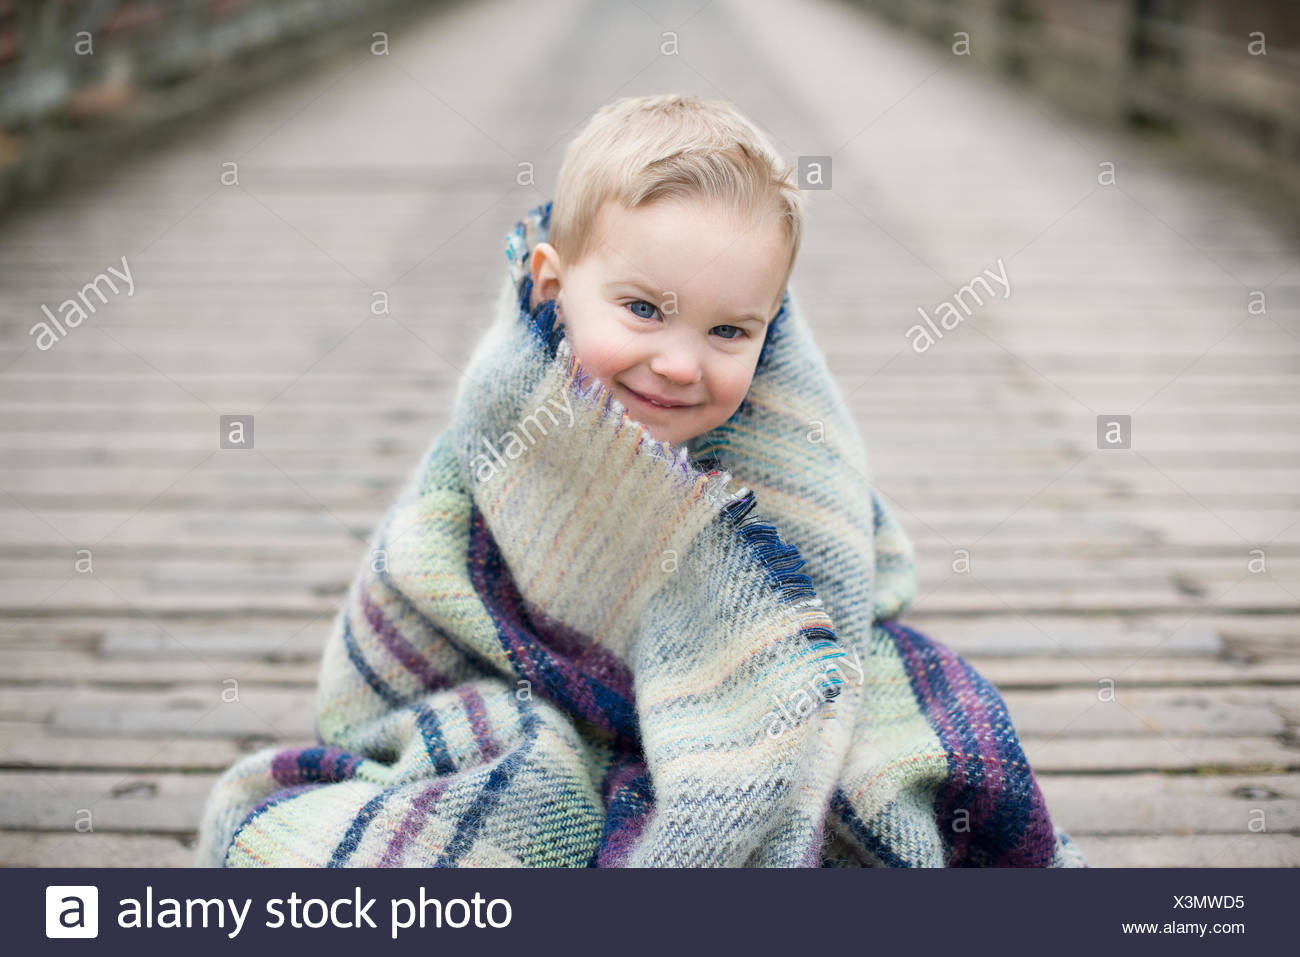 Portrait of a boy wrapped in blanket, sitting on a wooden bridge - Stock Image